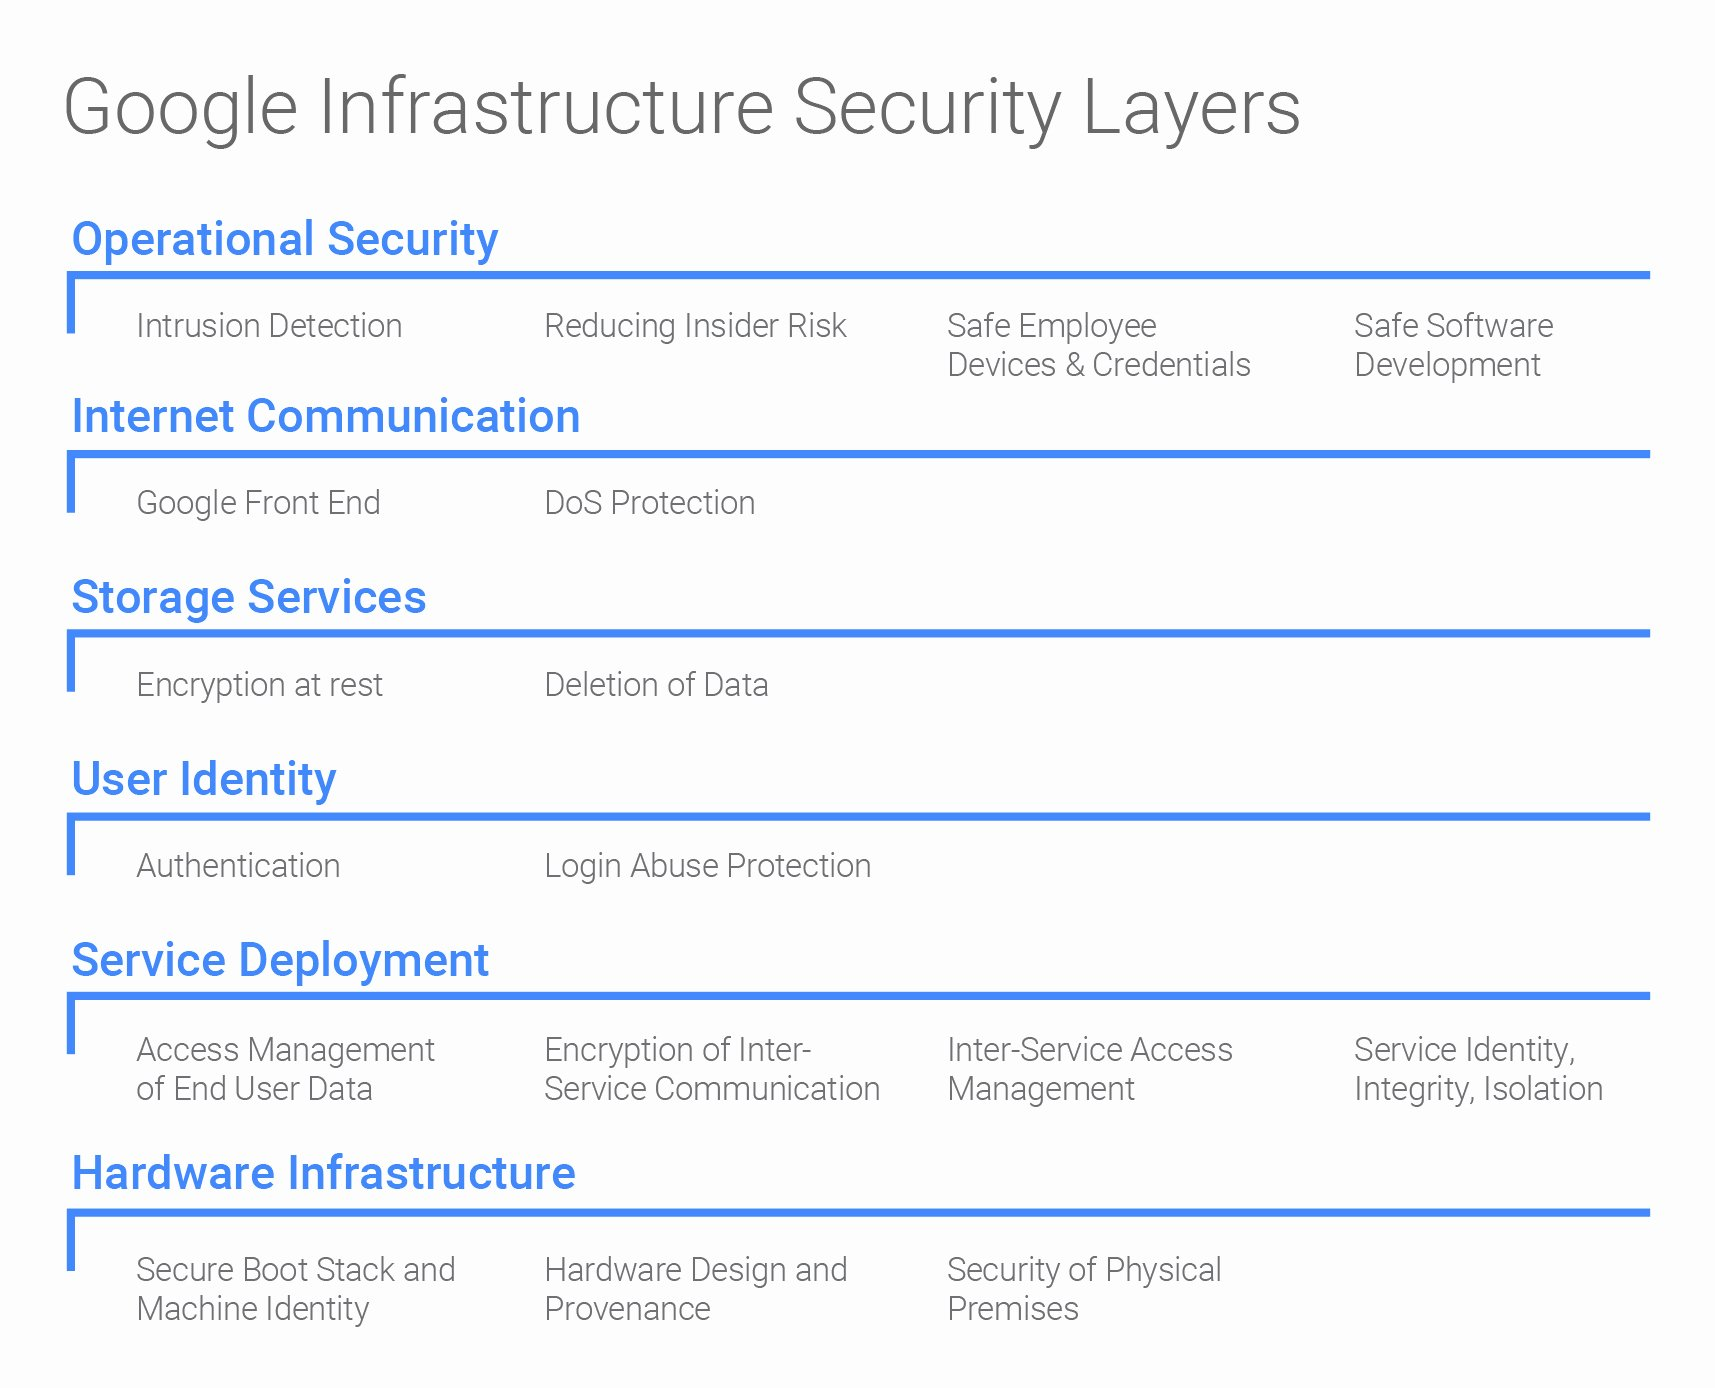 Physical Security Plan Template Luxury Google Infrastructure Security Design Overview